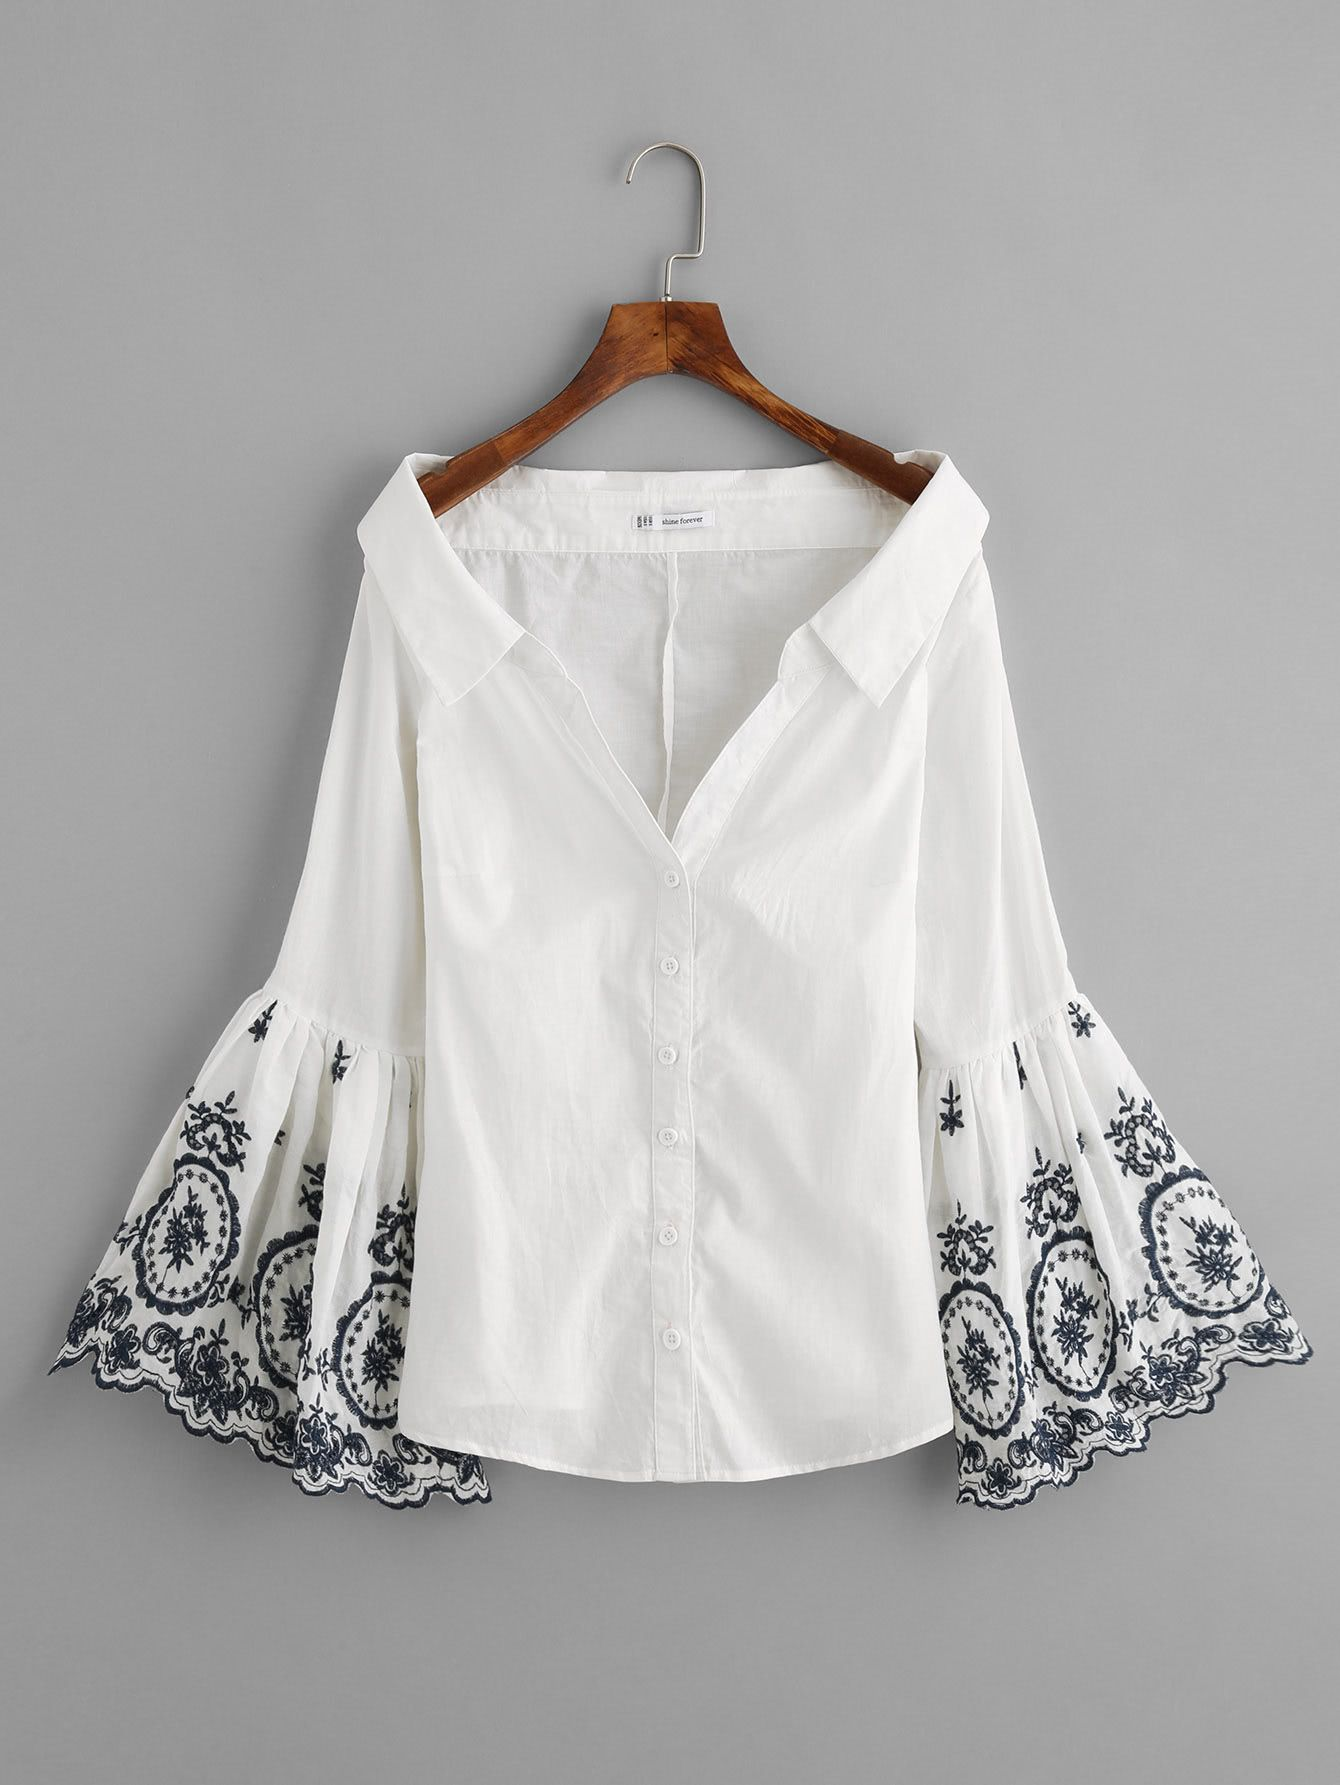 1487ecc89af9 Shop Embroidered Trumpet Sleeve Collared Boat Neck Blouse online. SheIn  offers Embroidered Trumpet Sleeve Collared Boat Neck Blouse & more to fit  your ...